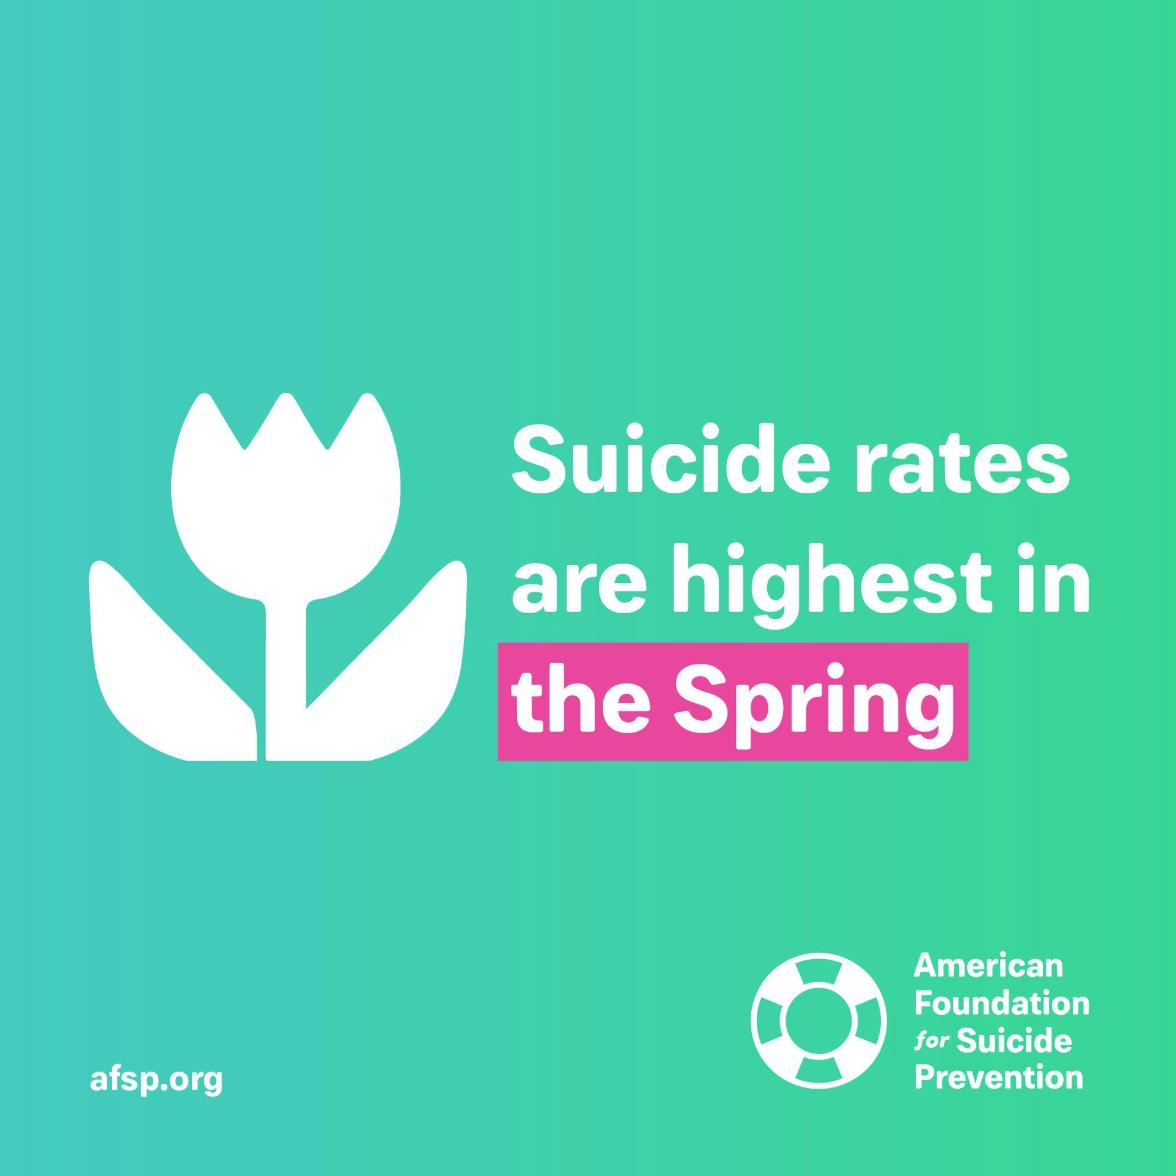 Spring can be a tough time for many of us. Don't be afraid to reach out for help.  Call: @800273TALK Text: TWT to 741741(@CrisisTextLine)  #mentalhealth #TuesdayThoughts